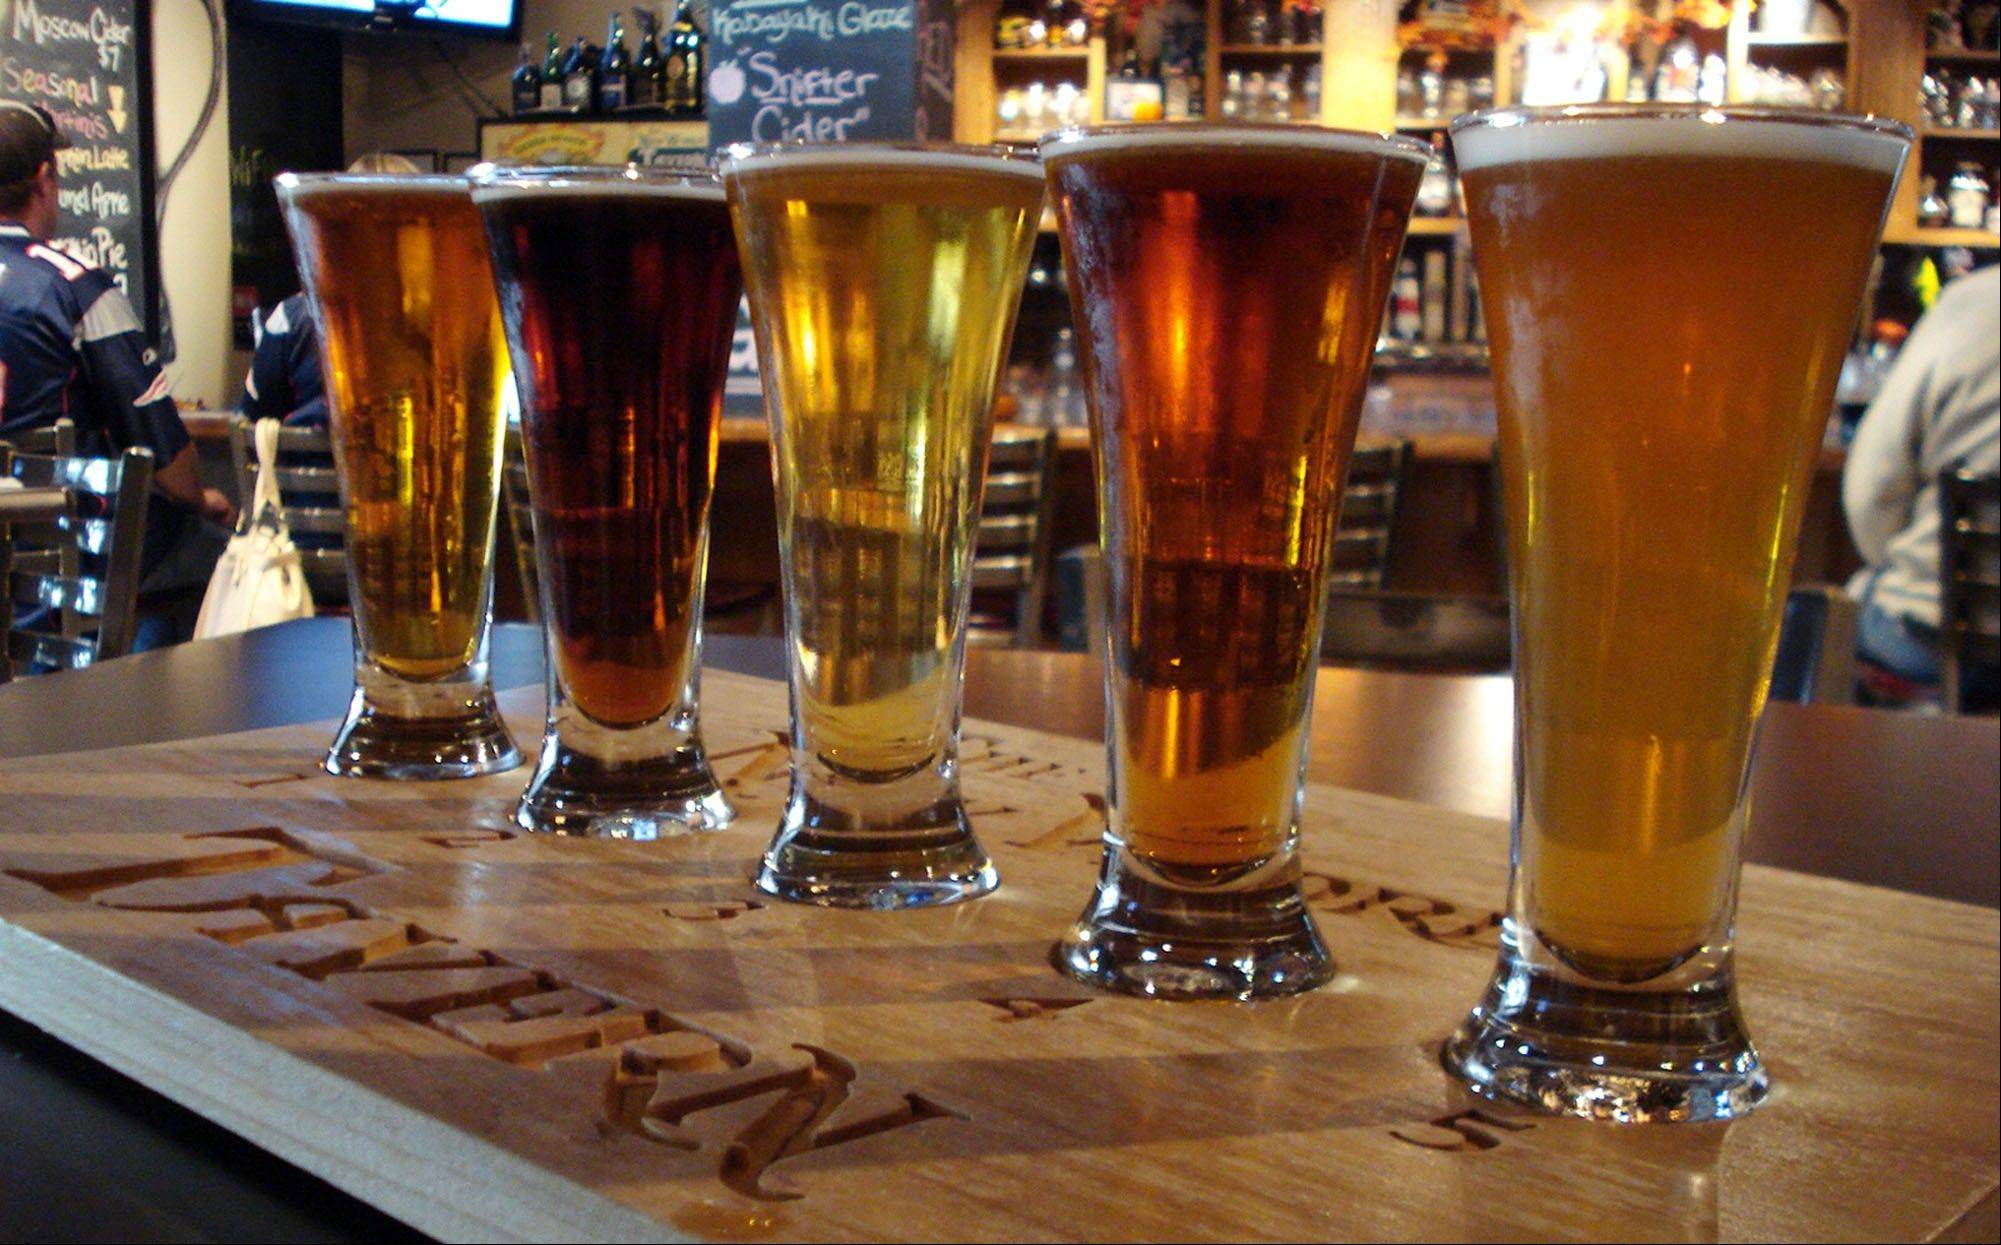 Customers can try a beer flight � 4-ounce samples of five beers � at The New World Tavern in Plymouth, Mass.